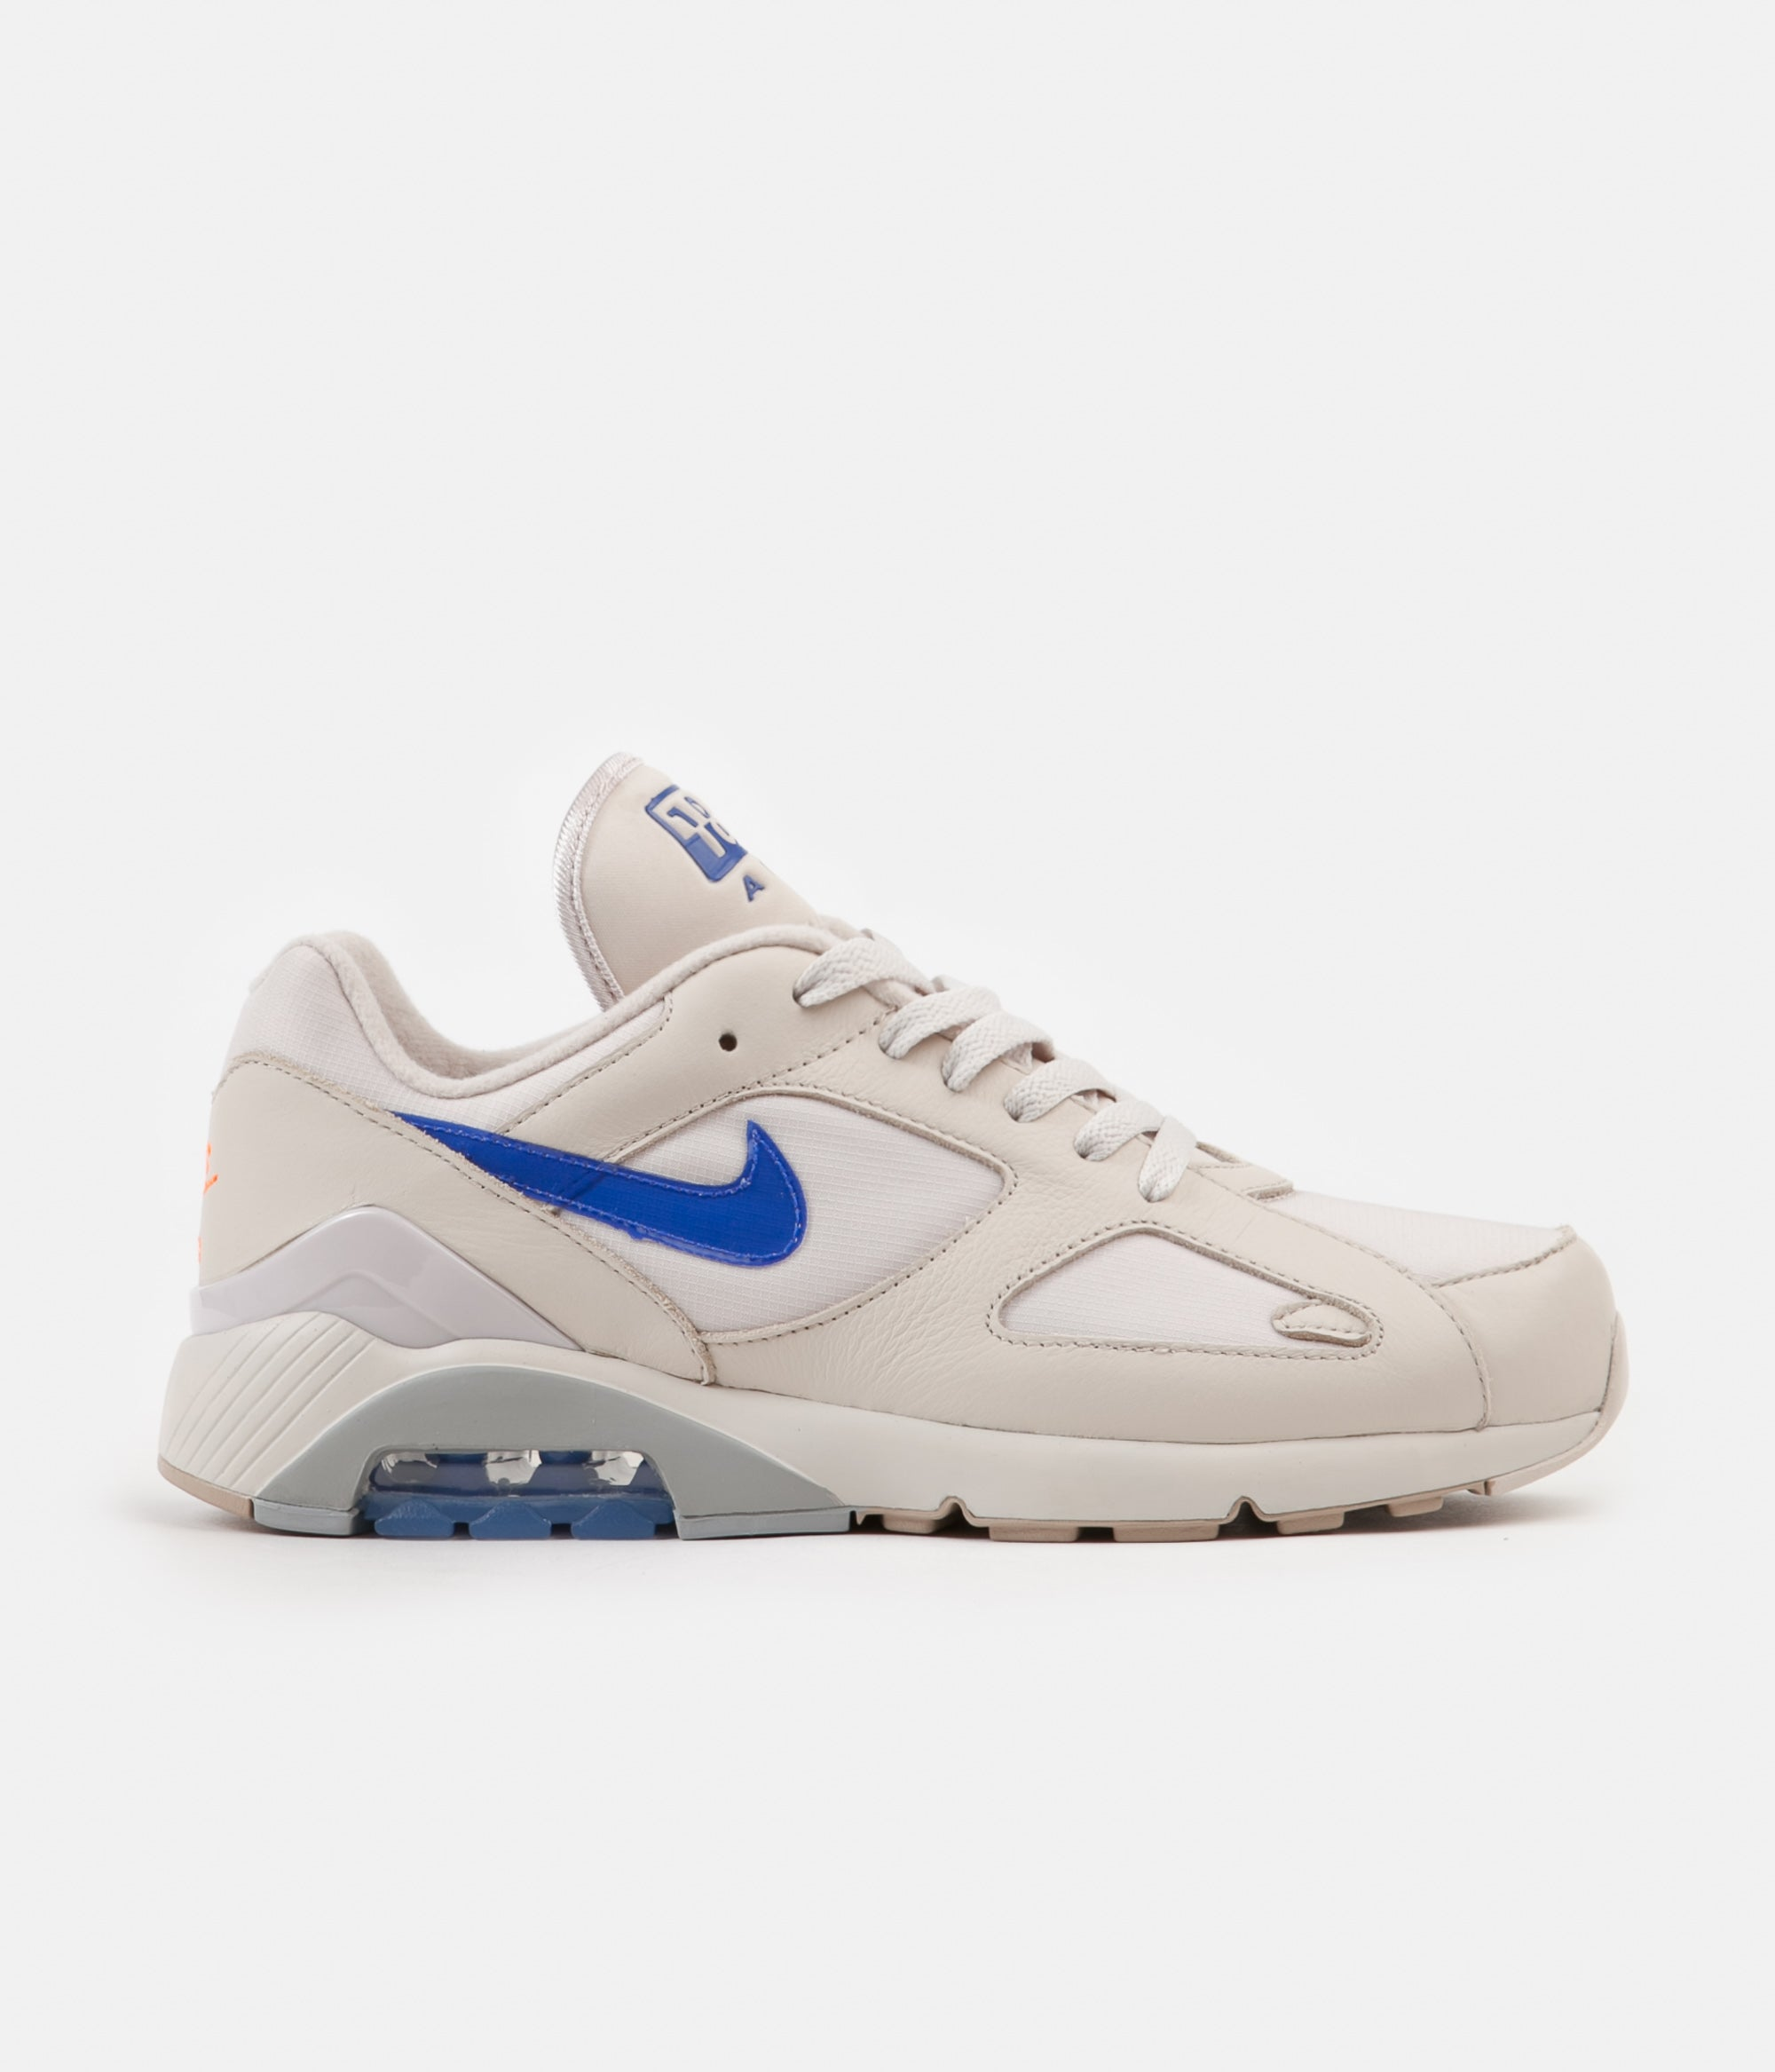 Suelto vestido Hacia atrás  Nike Air Max 180 Shoes - Desert Sand / Racer Blue - Total Orange | Always  in Colour